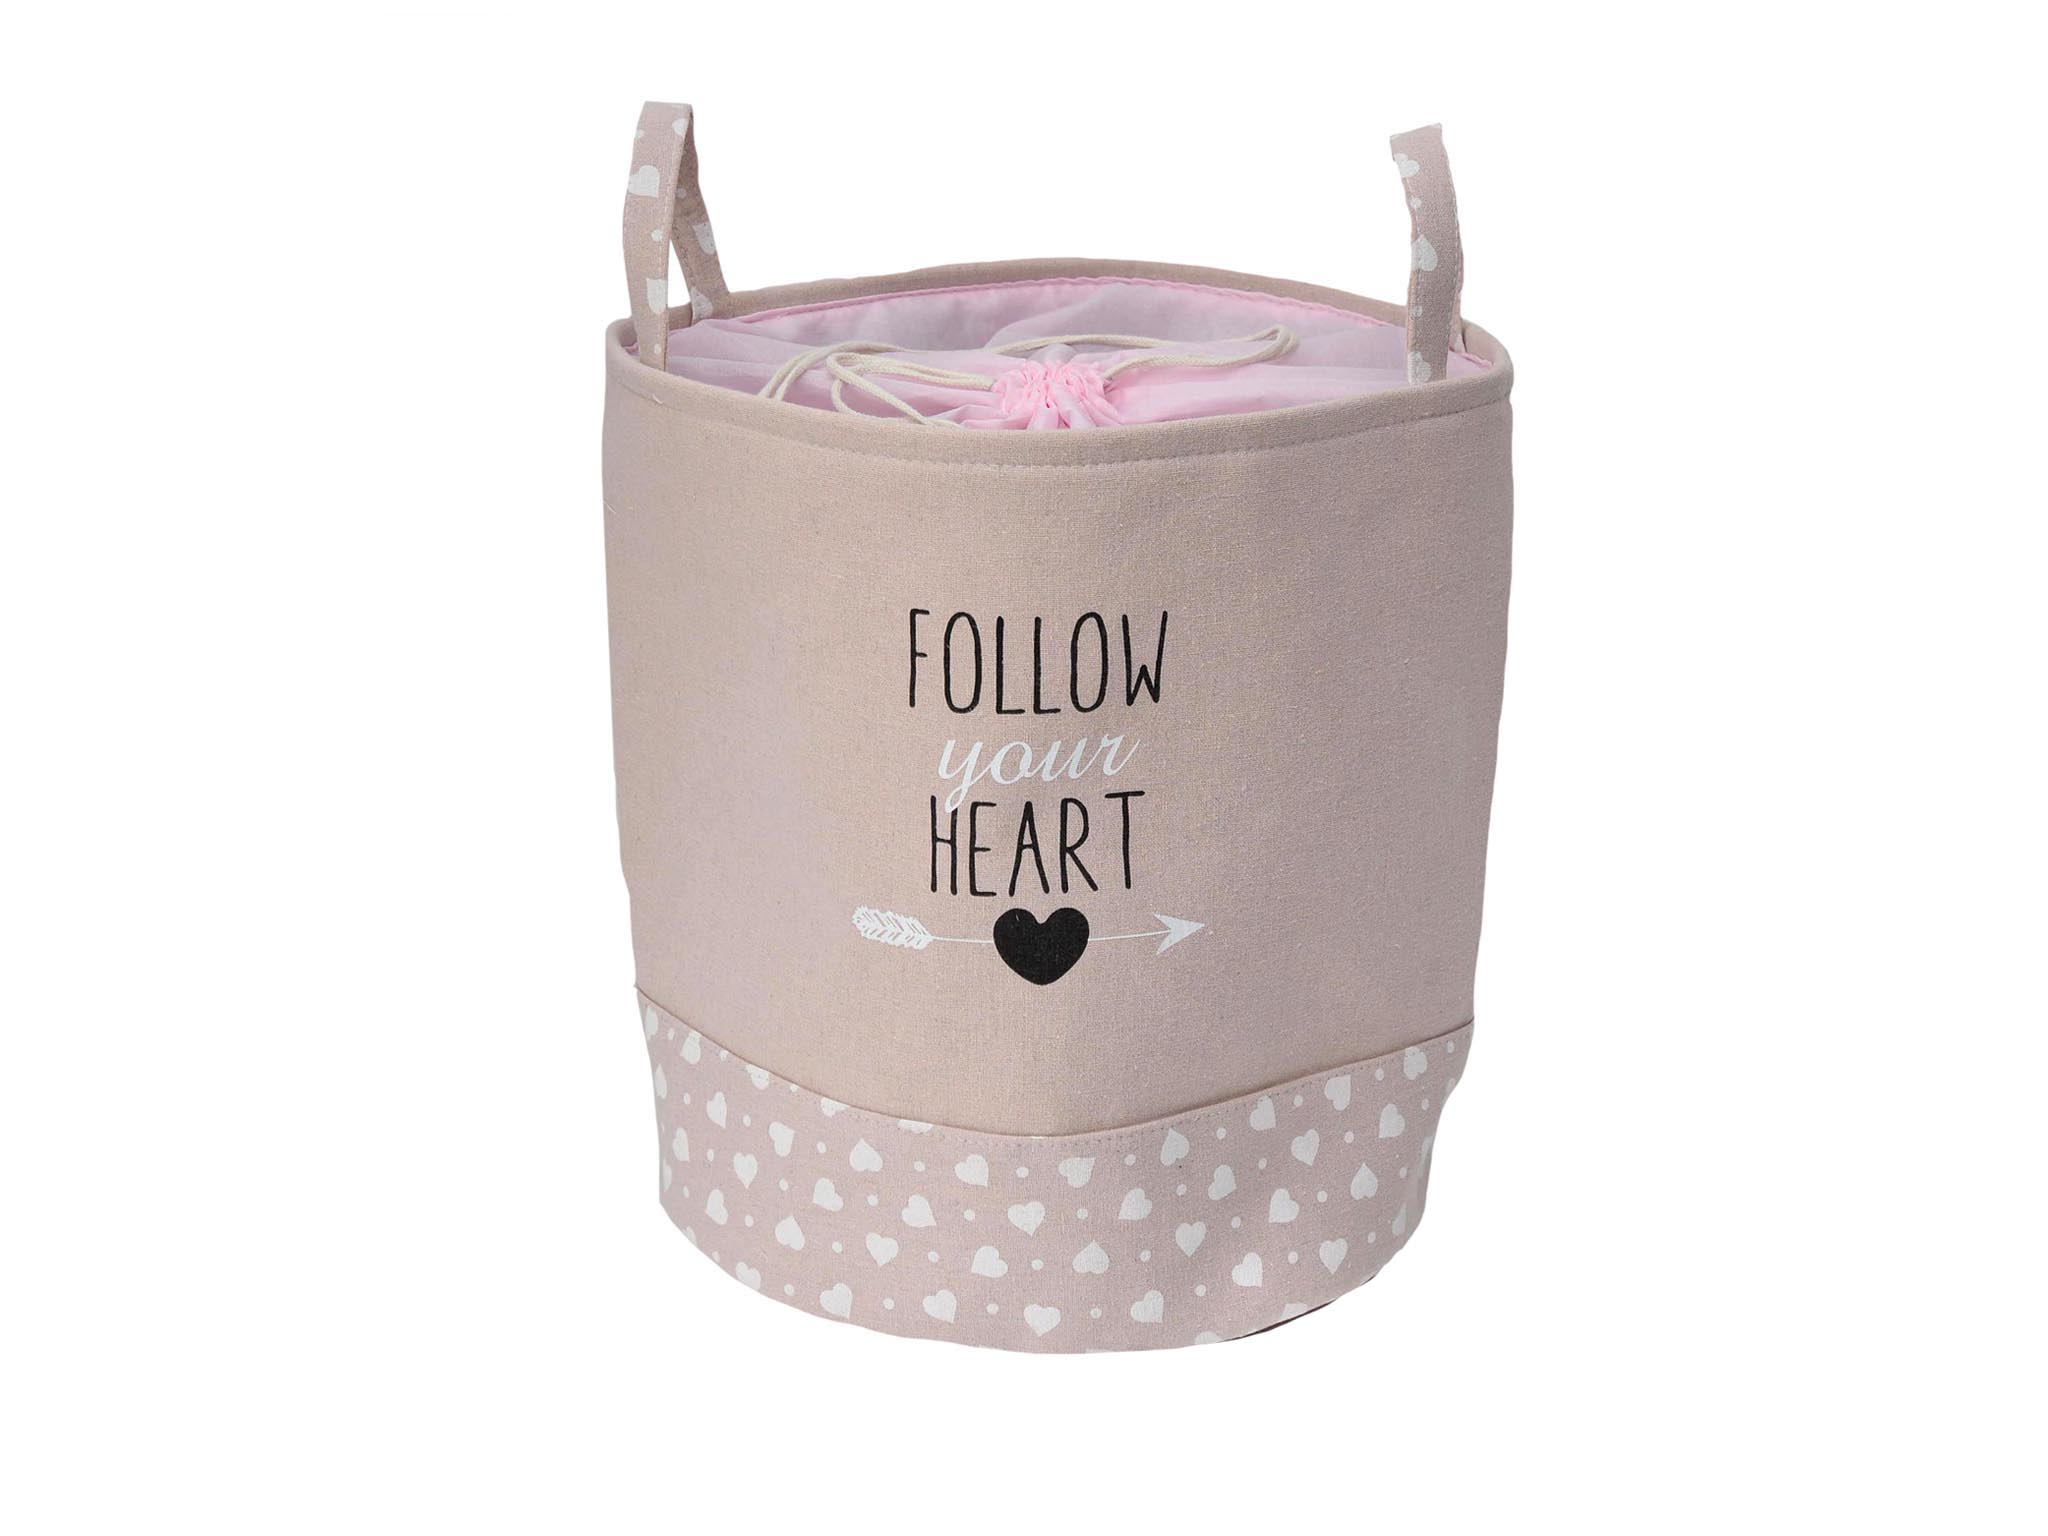 CESTA RED. ROSA FOLLOW YOUR HEART cod. 3900099